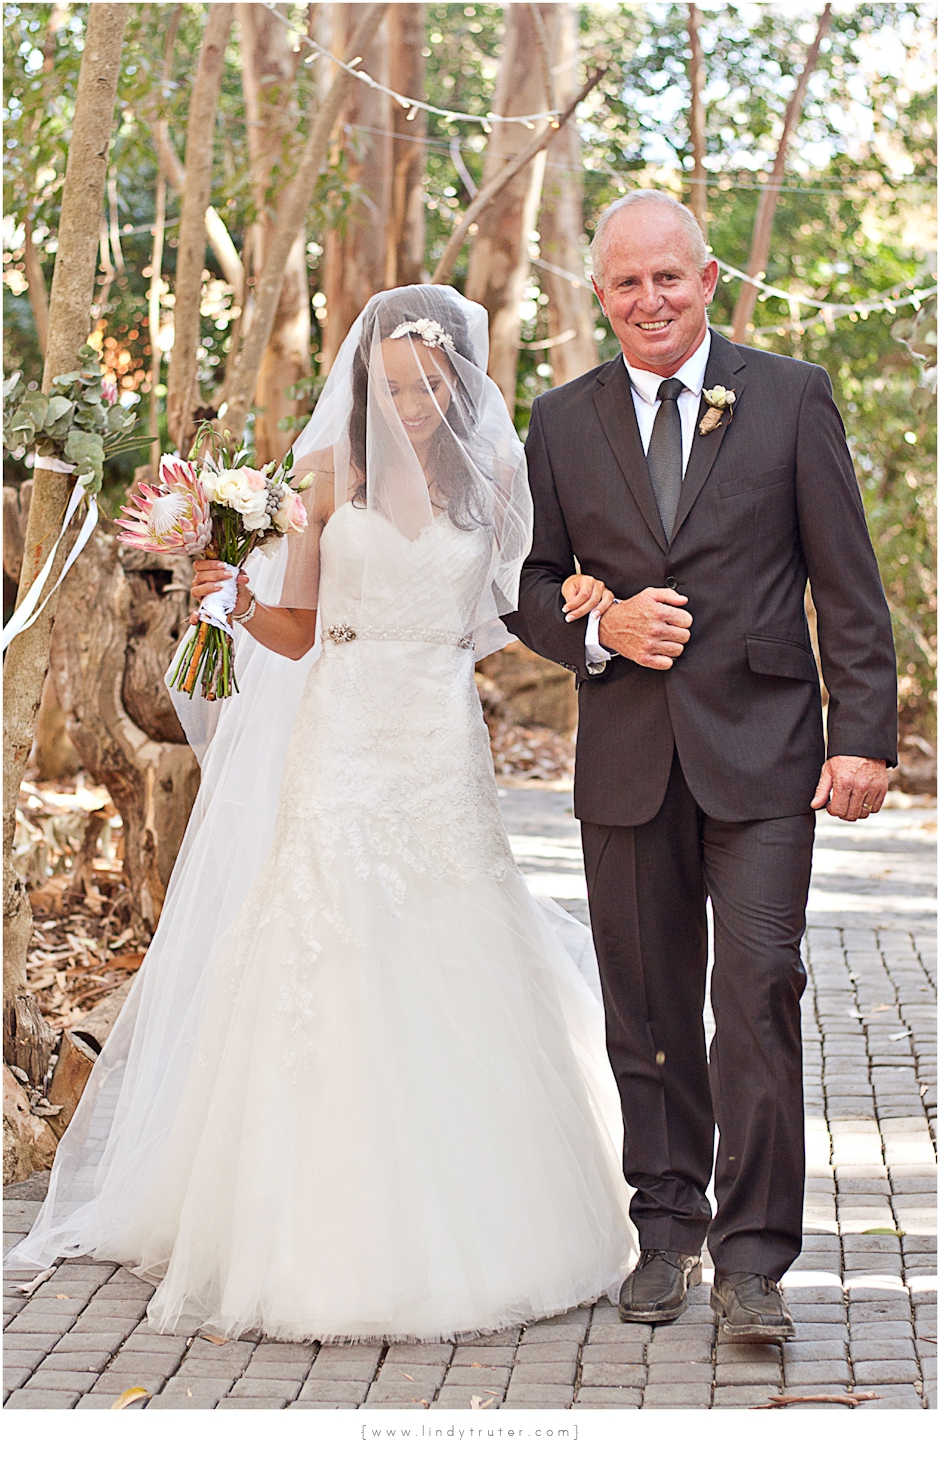 Jacques & Maryke_ Lindy Truter (32)